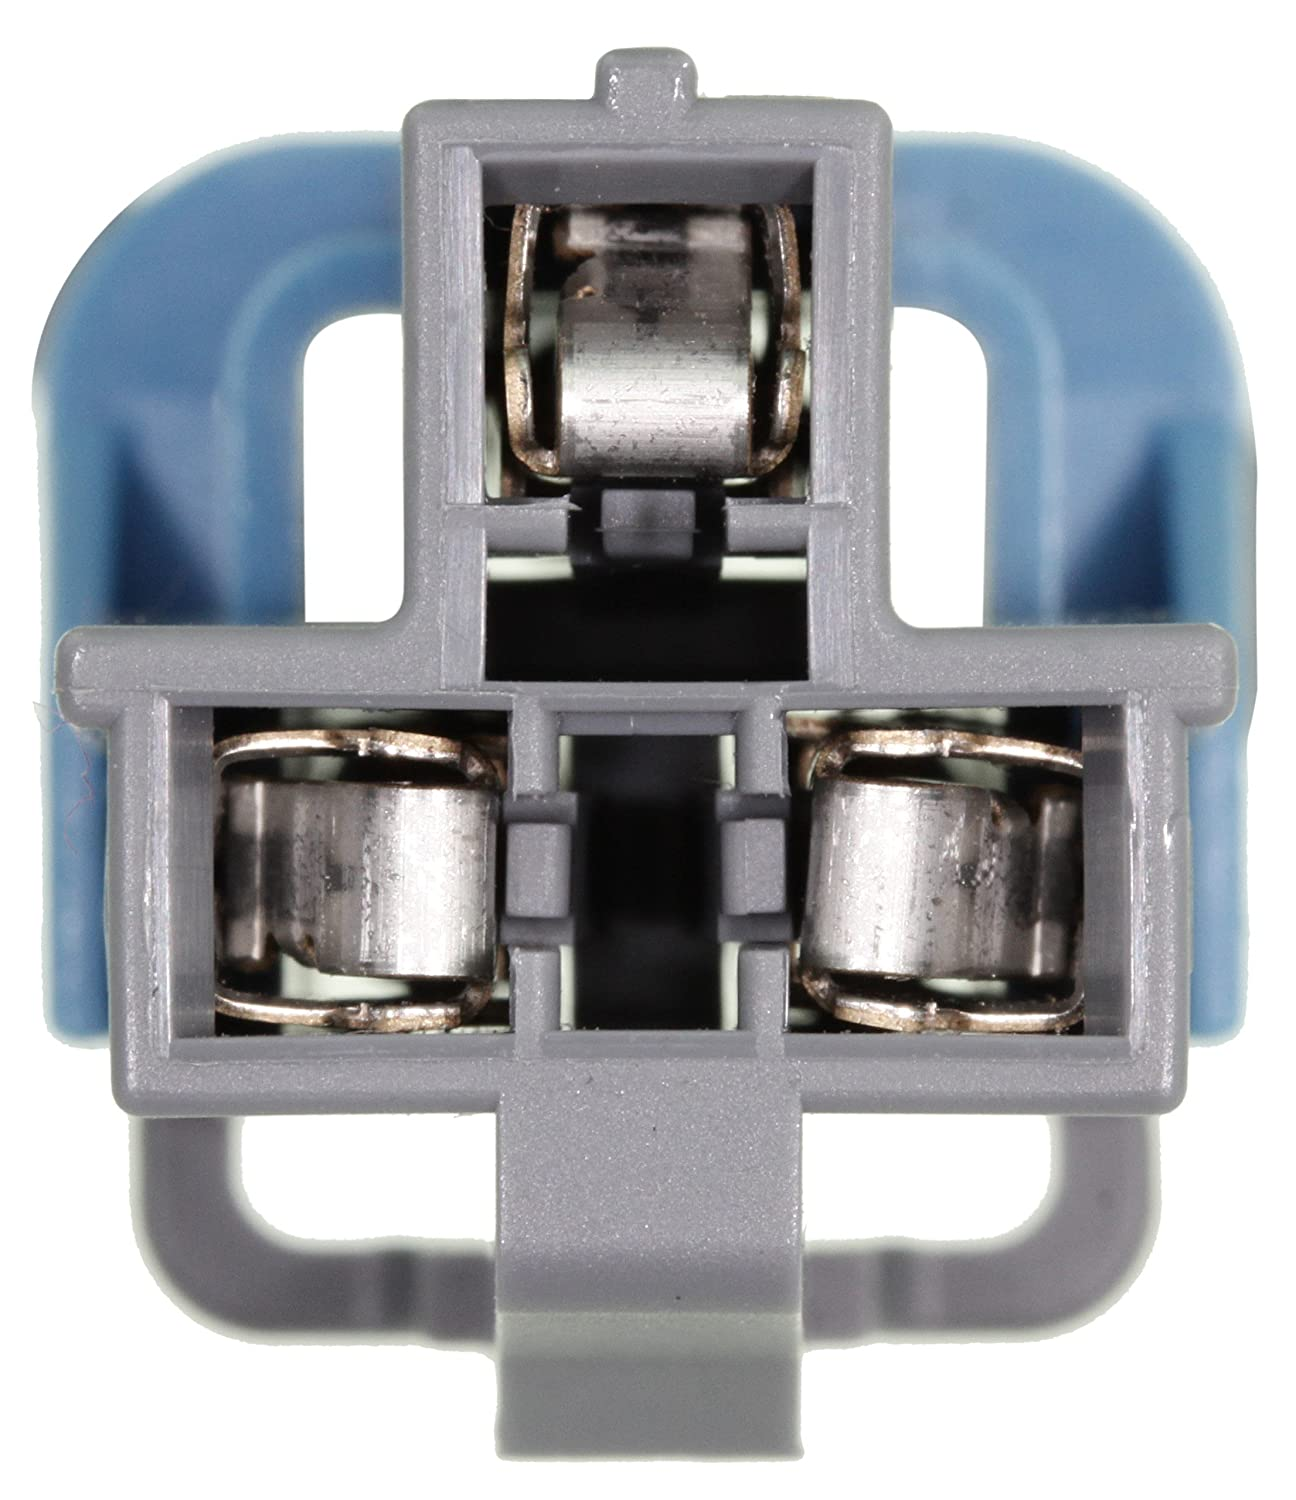 Wells 1287 Accessory Power Receptacle Connector